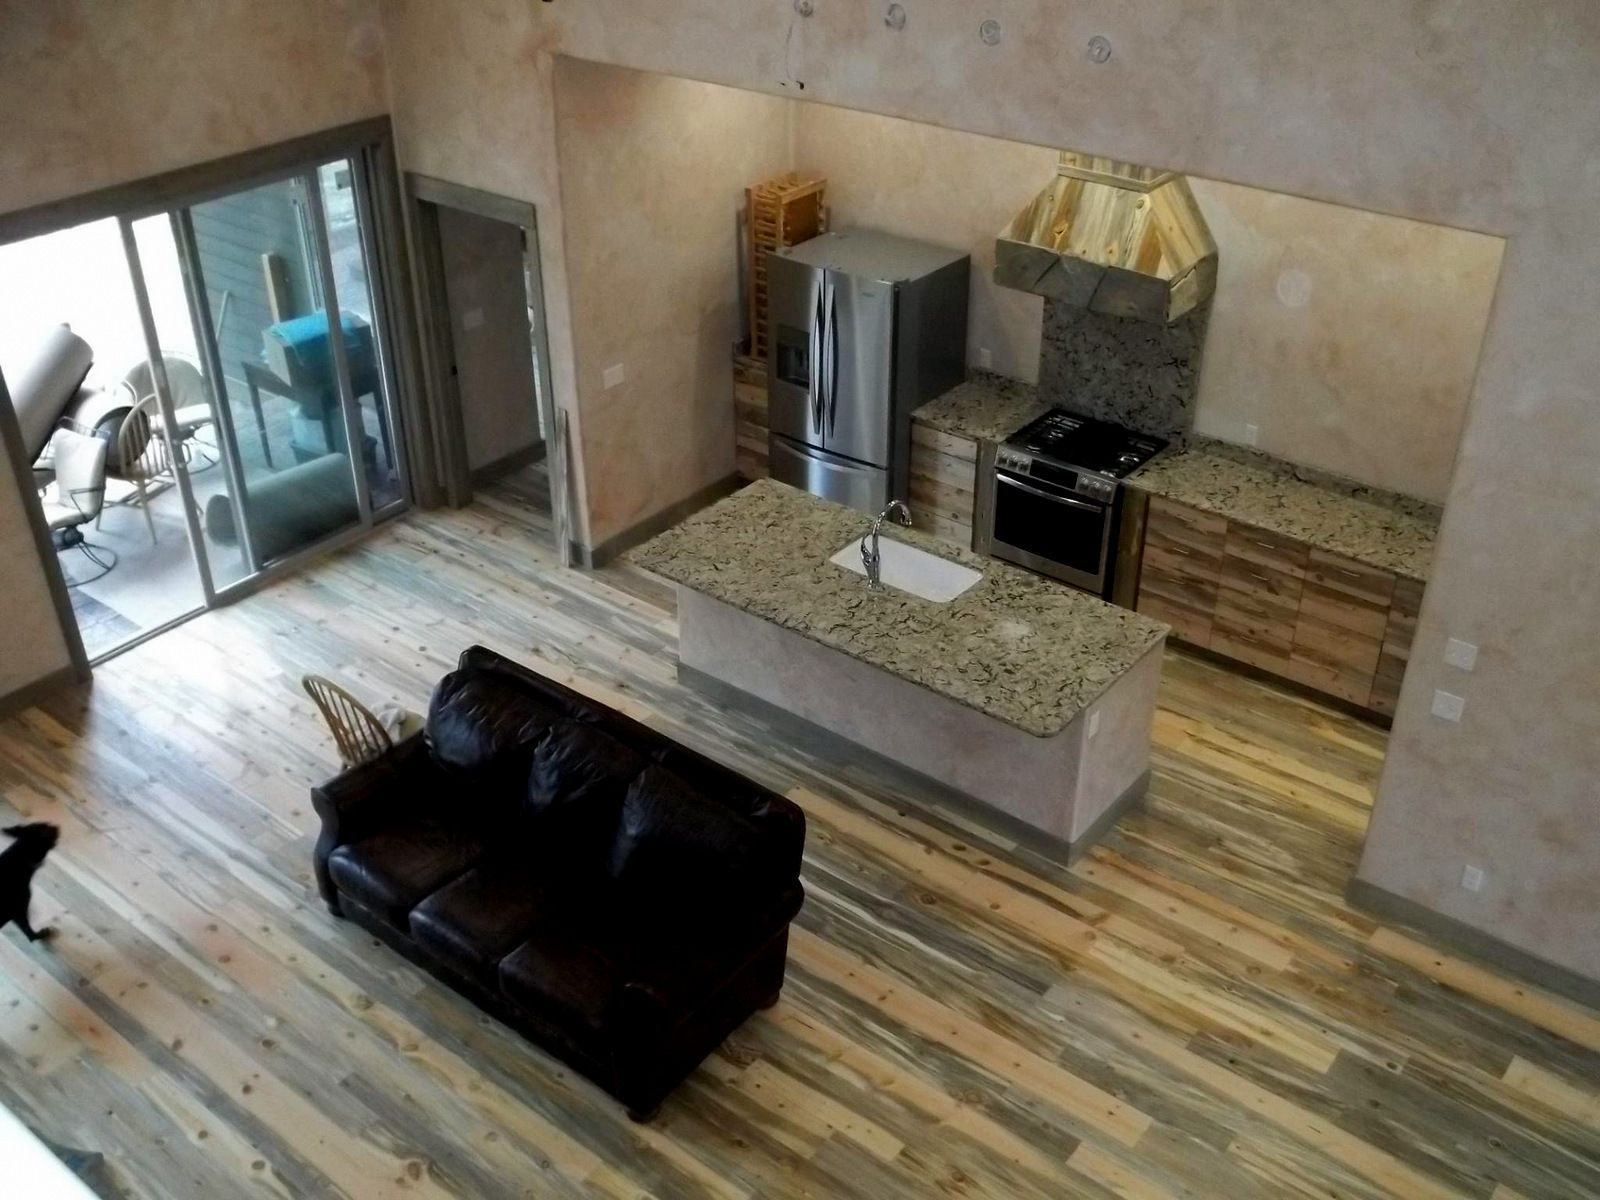 Nice Picture Of Our Beetle Kill Pine Flooring Sent In From A Local Montana Customer Not A Floor For Everyon With Images Beetle Kill Pine Reclaimed Wood Floors Pine Floors